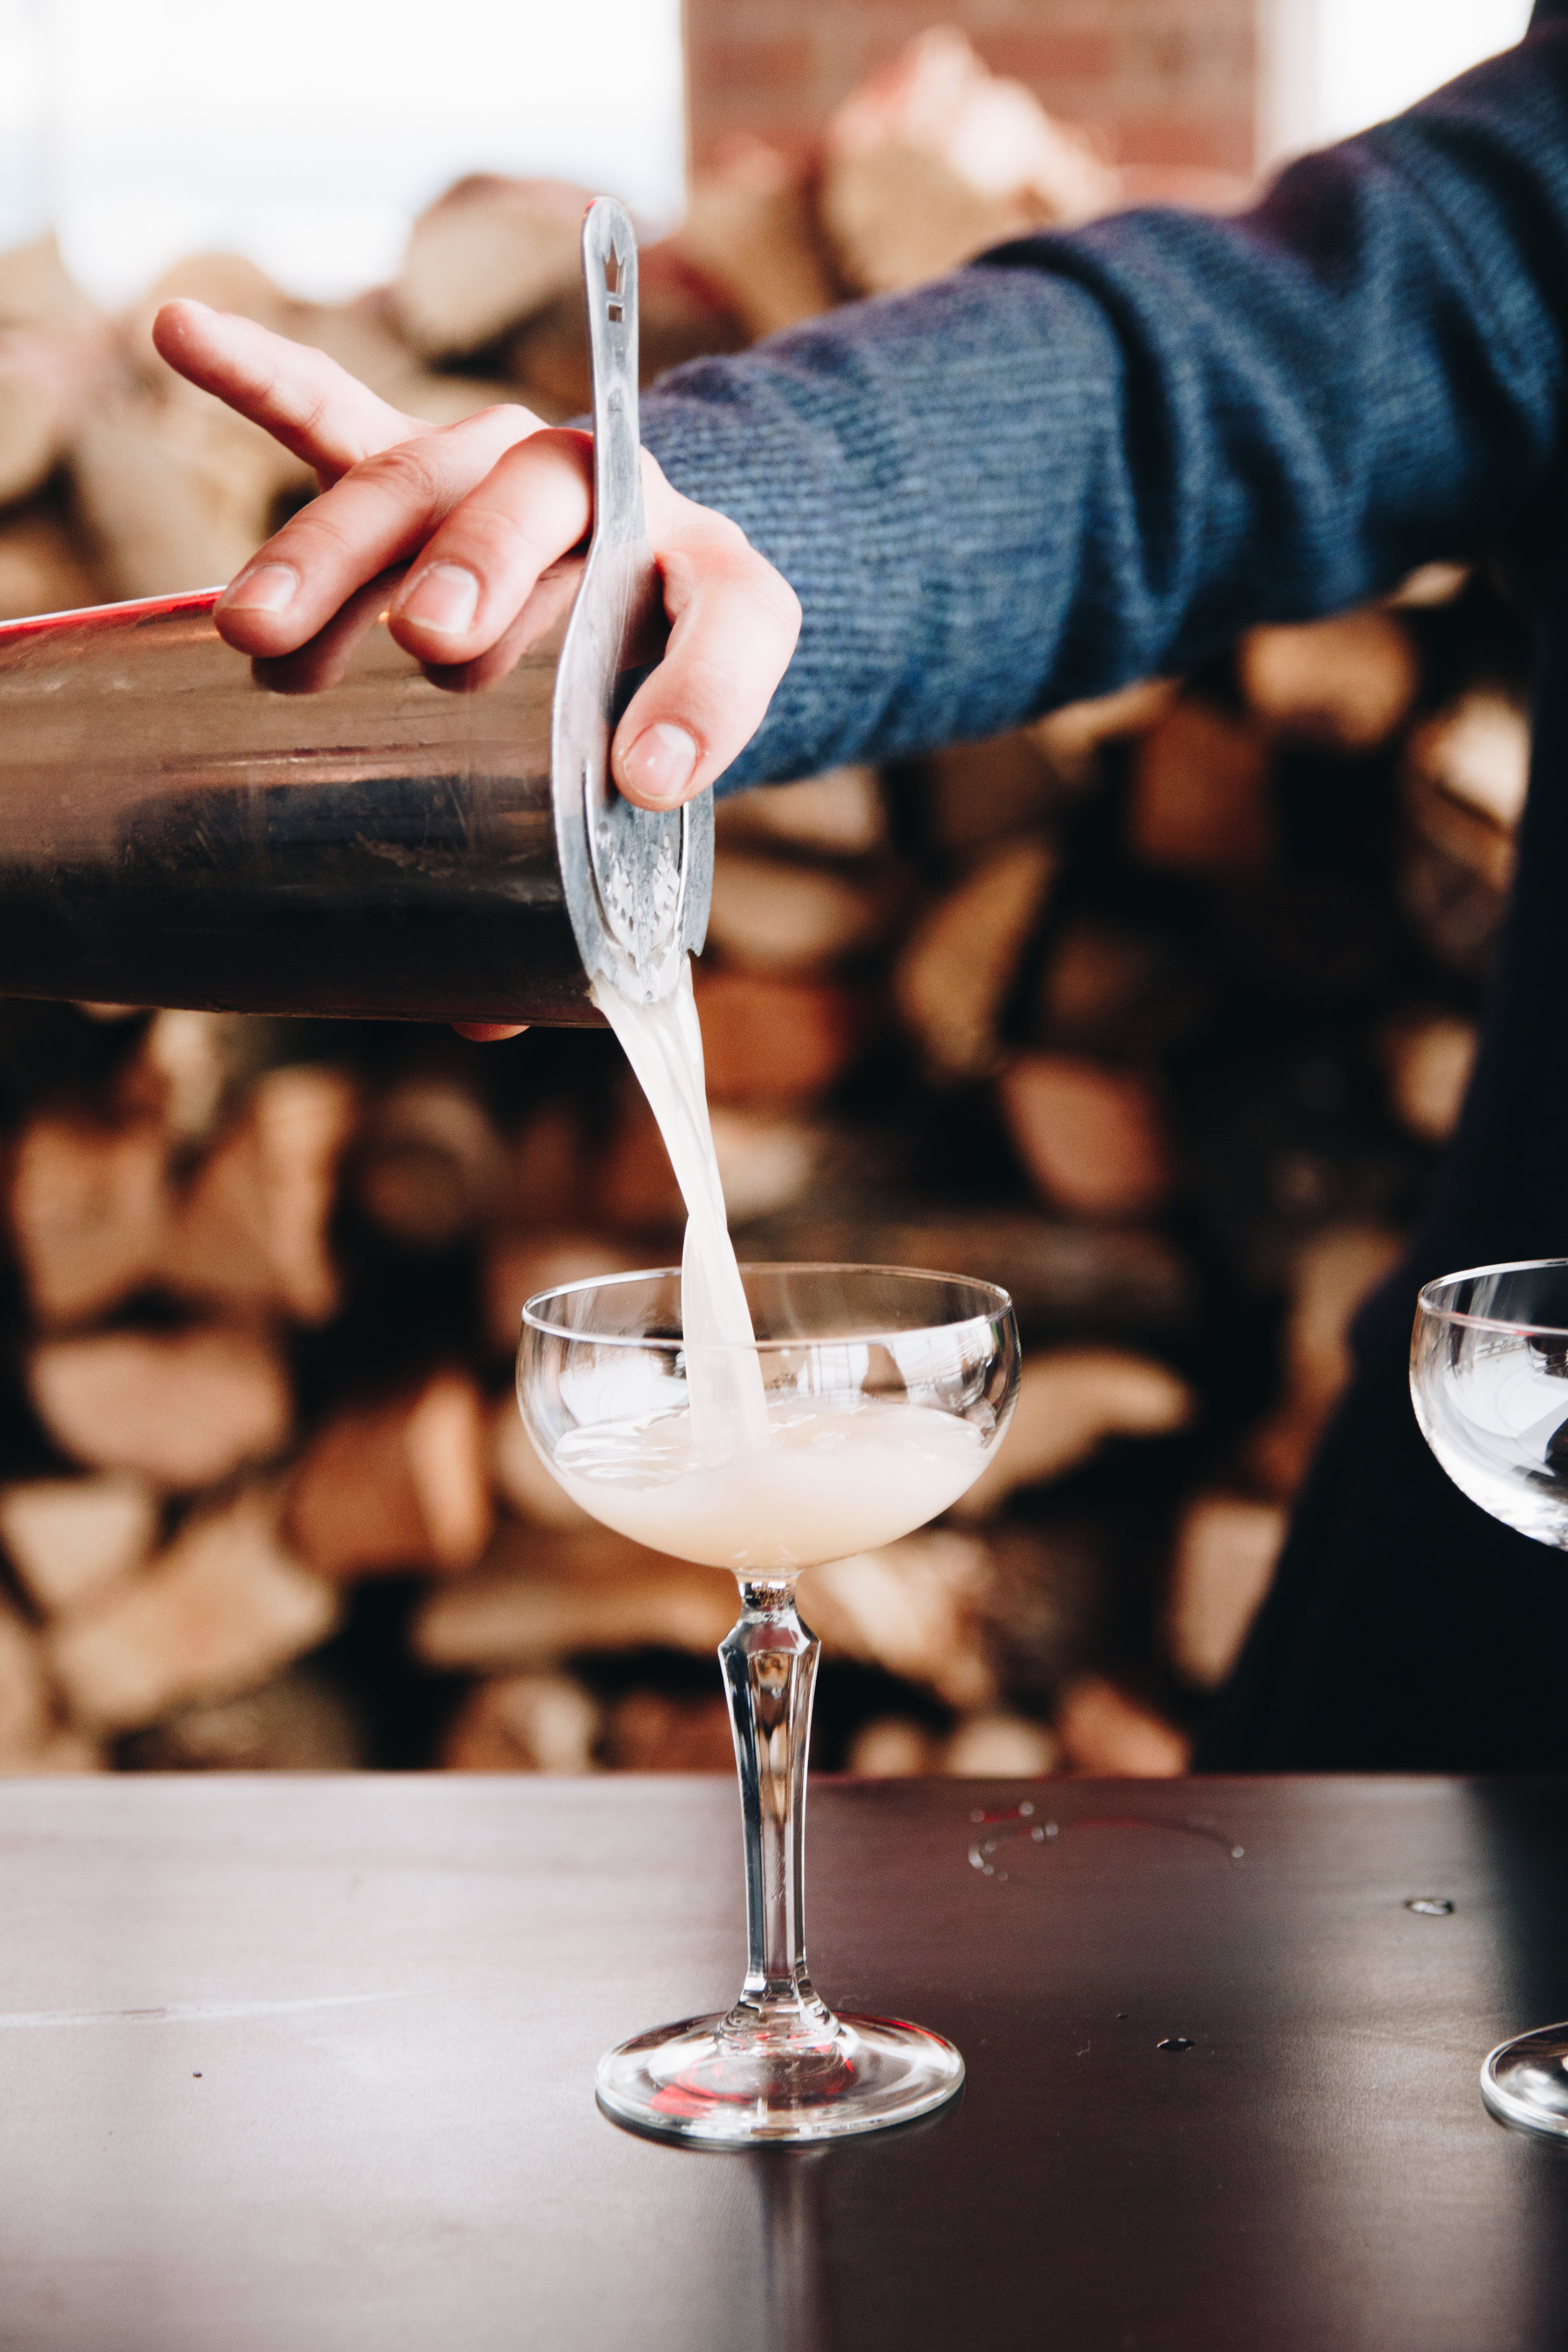 Have an idea for your own event or wedding signature cocktail? - Get in touch and let's collaborate!